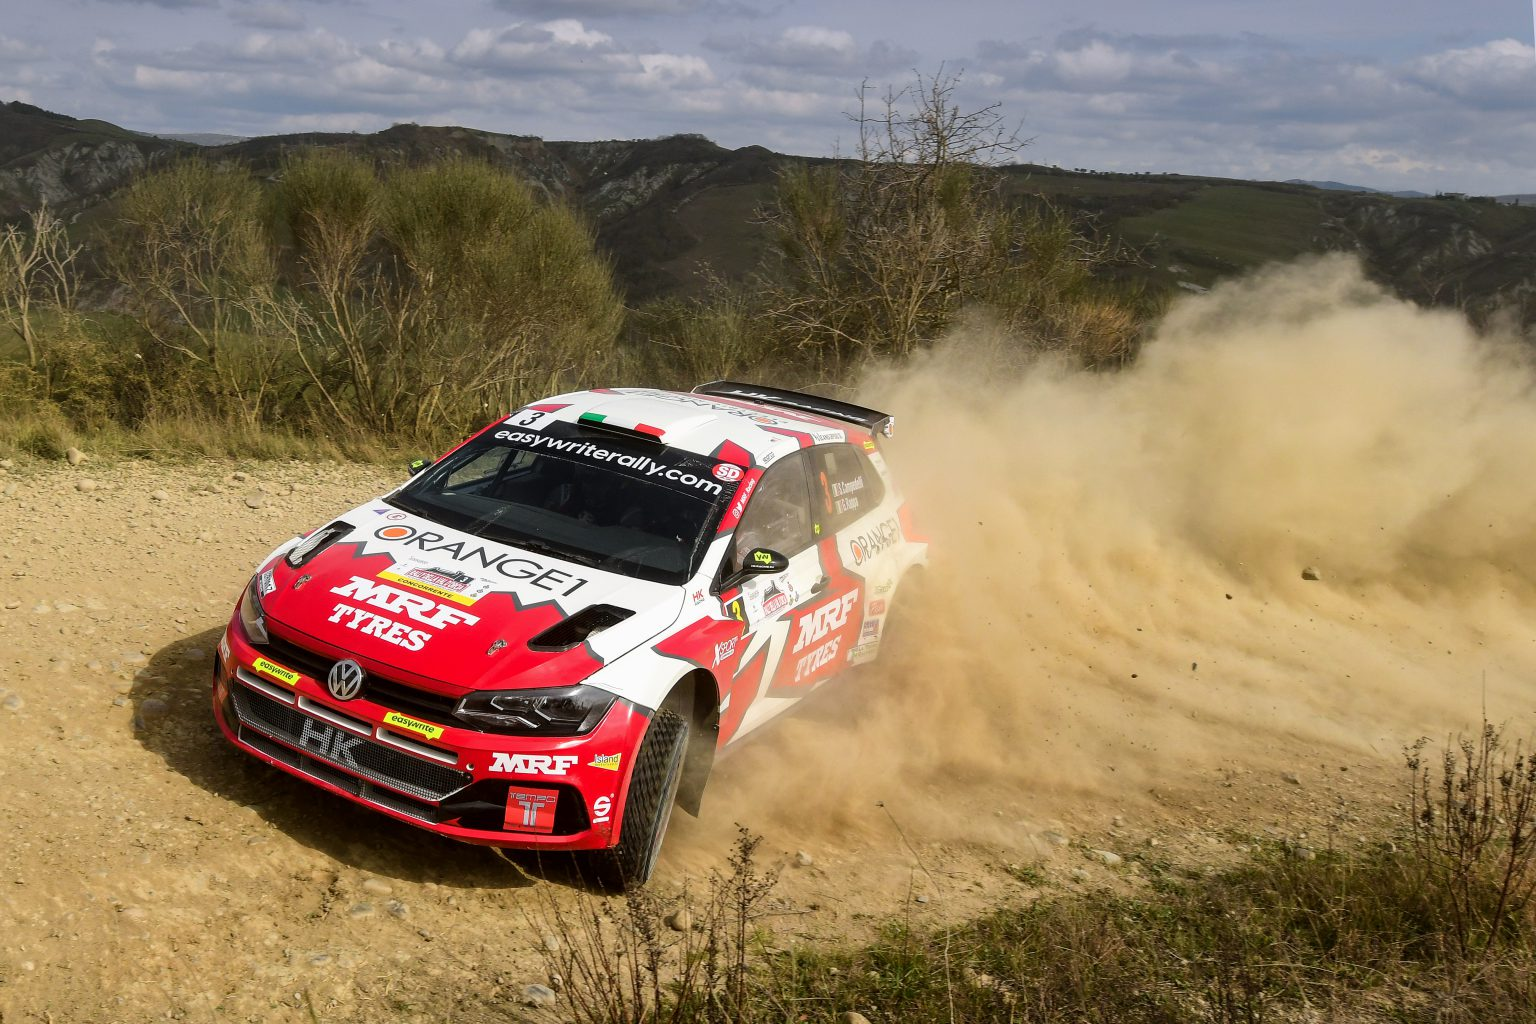 RALLY VAL D'ORCIA 2021#3 CAMPEDELLI-RAPPA